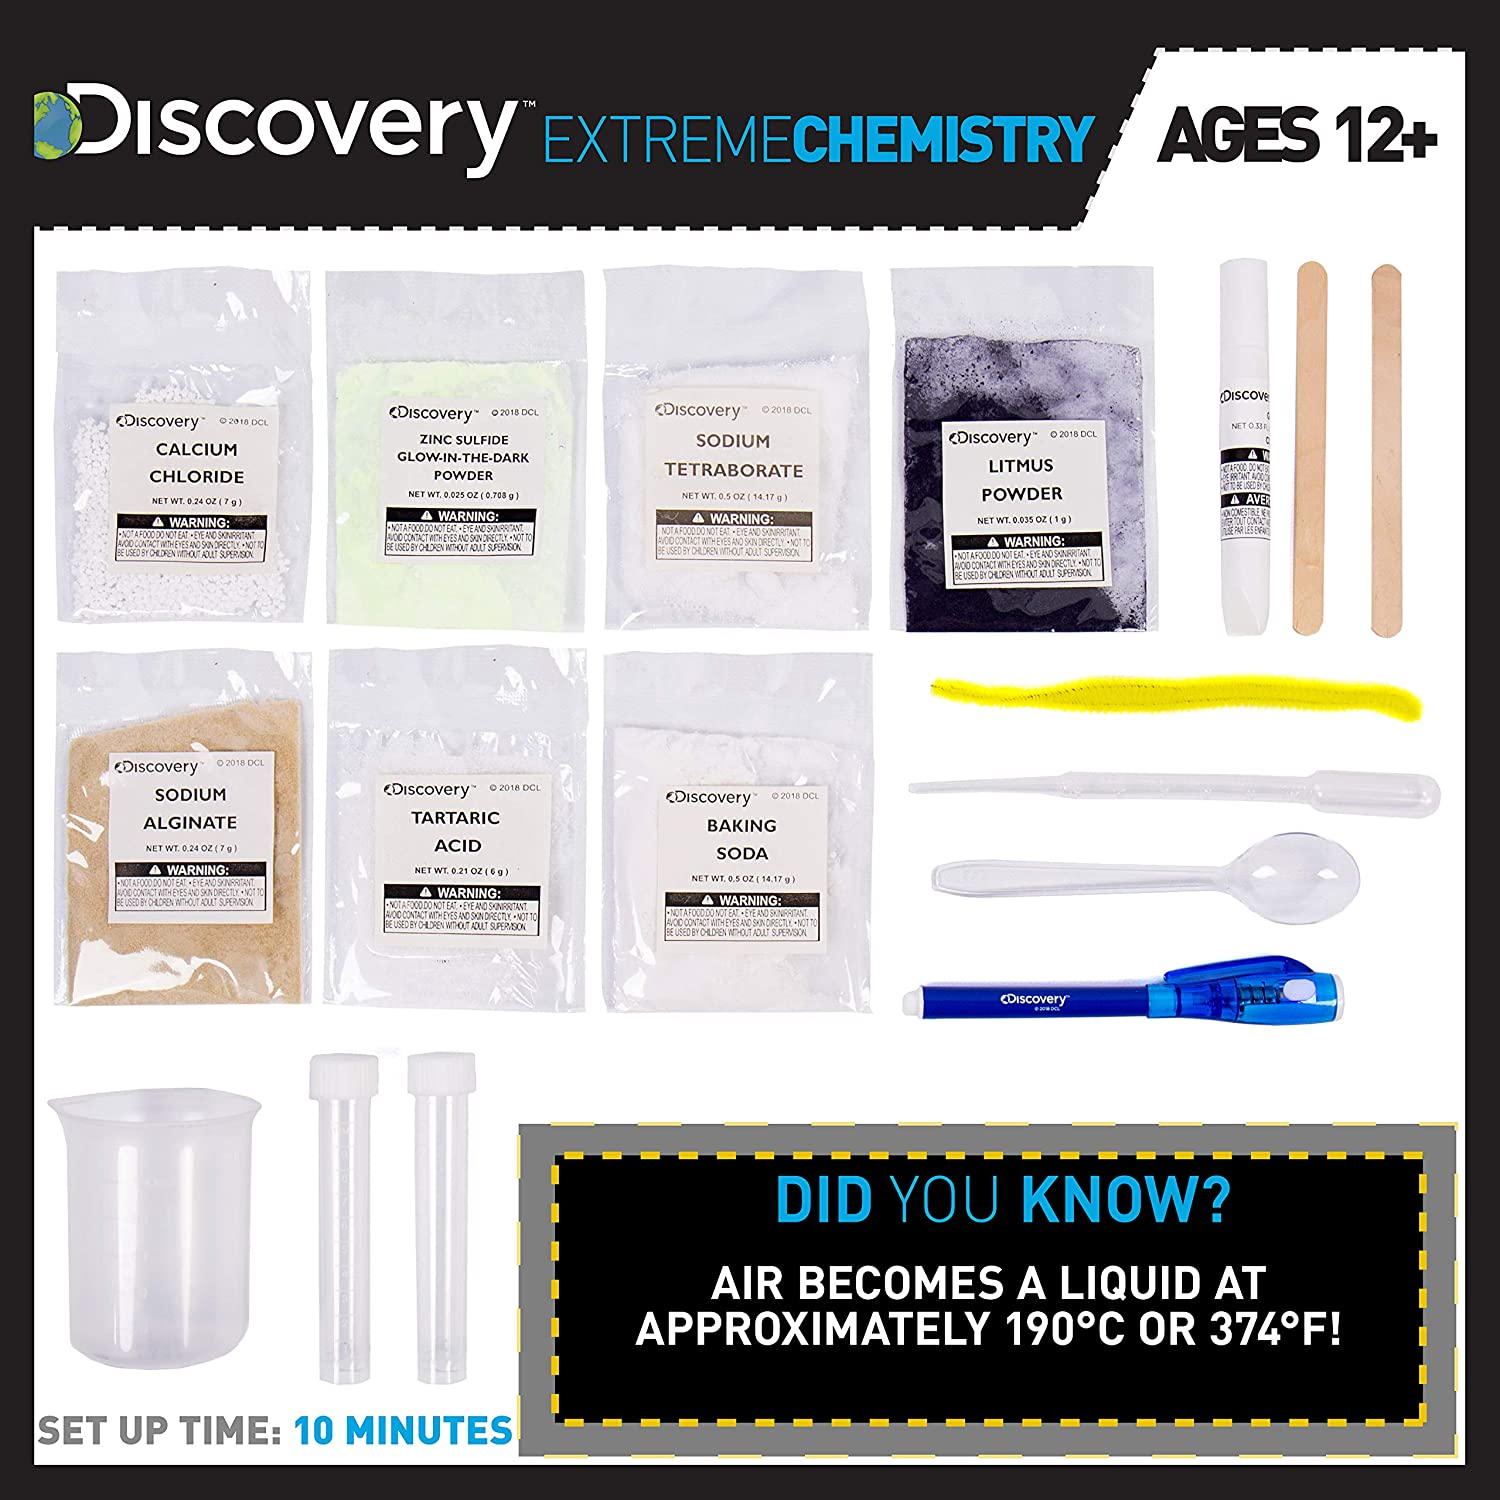 Discovery Extreme Chemistry Stem Science Kit by Horizon Group Usa, 40 Fun  Experiments, Make Your Own Crystals, DIY Glowing Slime, Fizzy Eruptions,